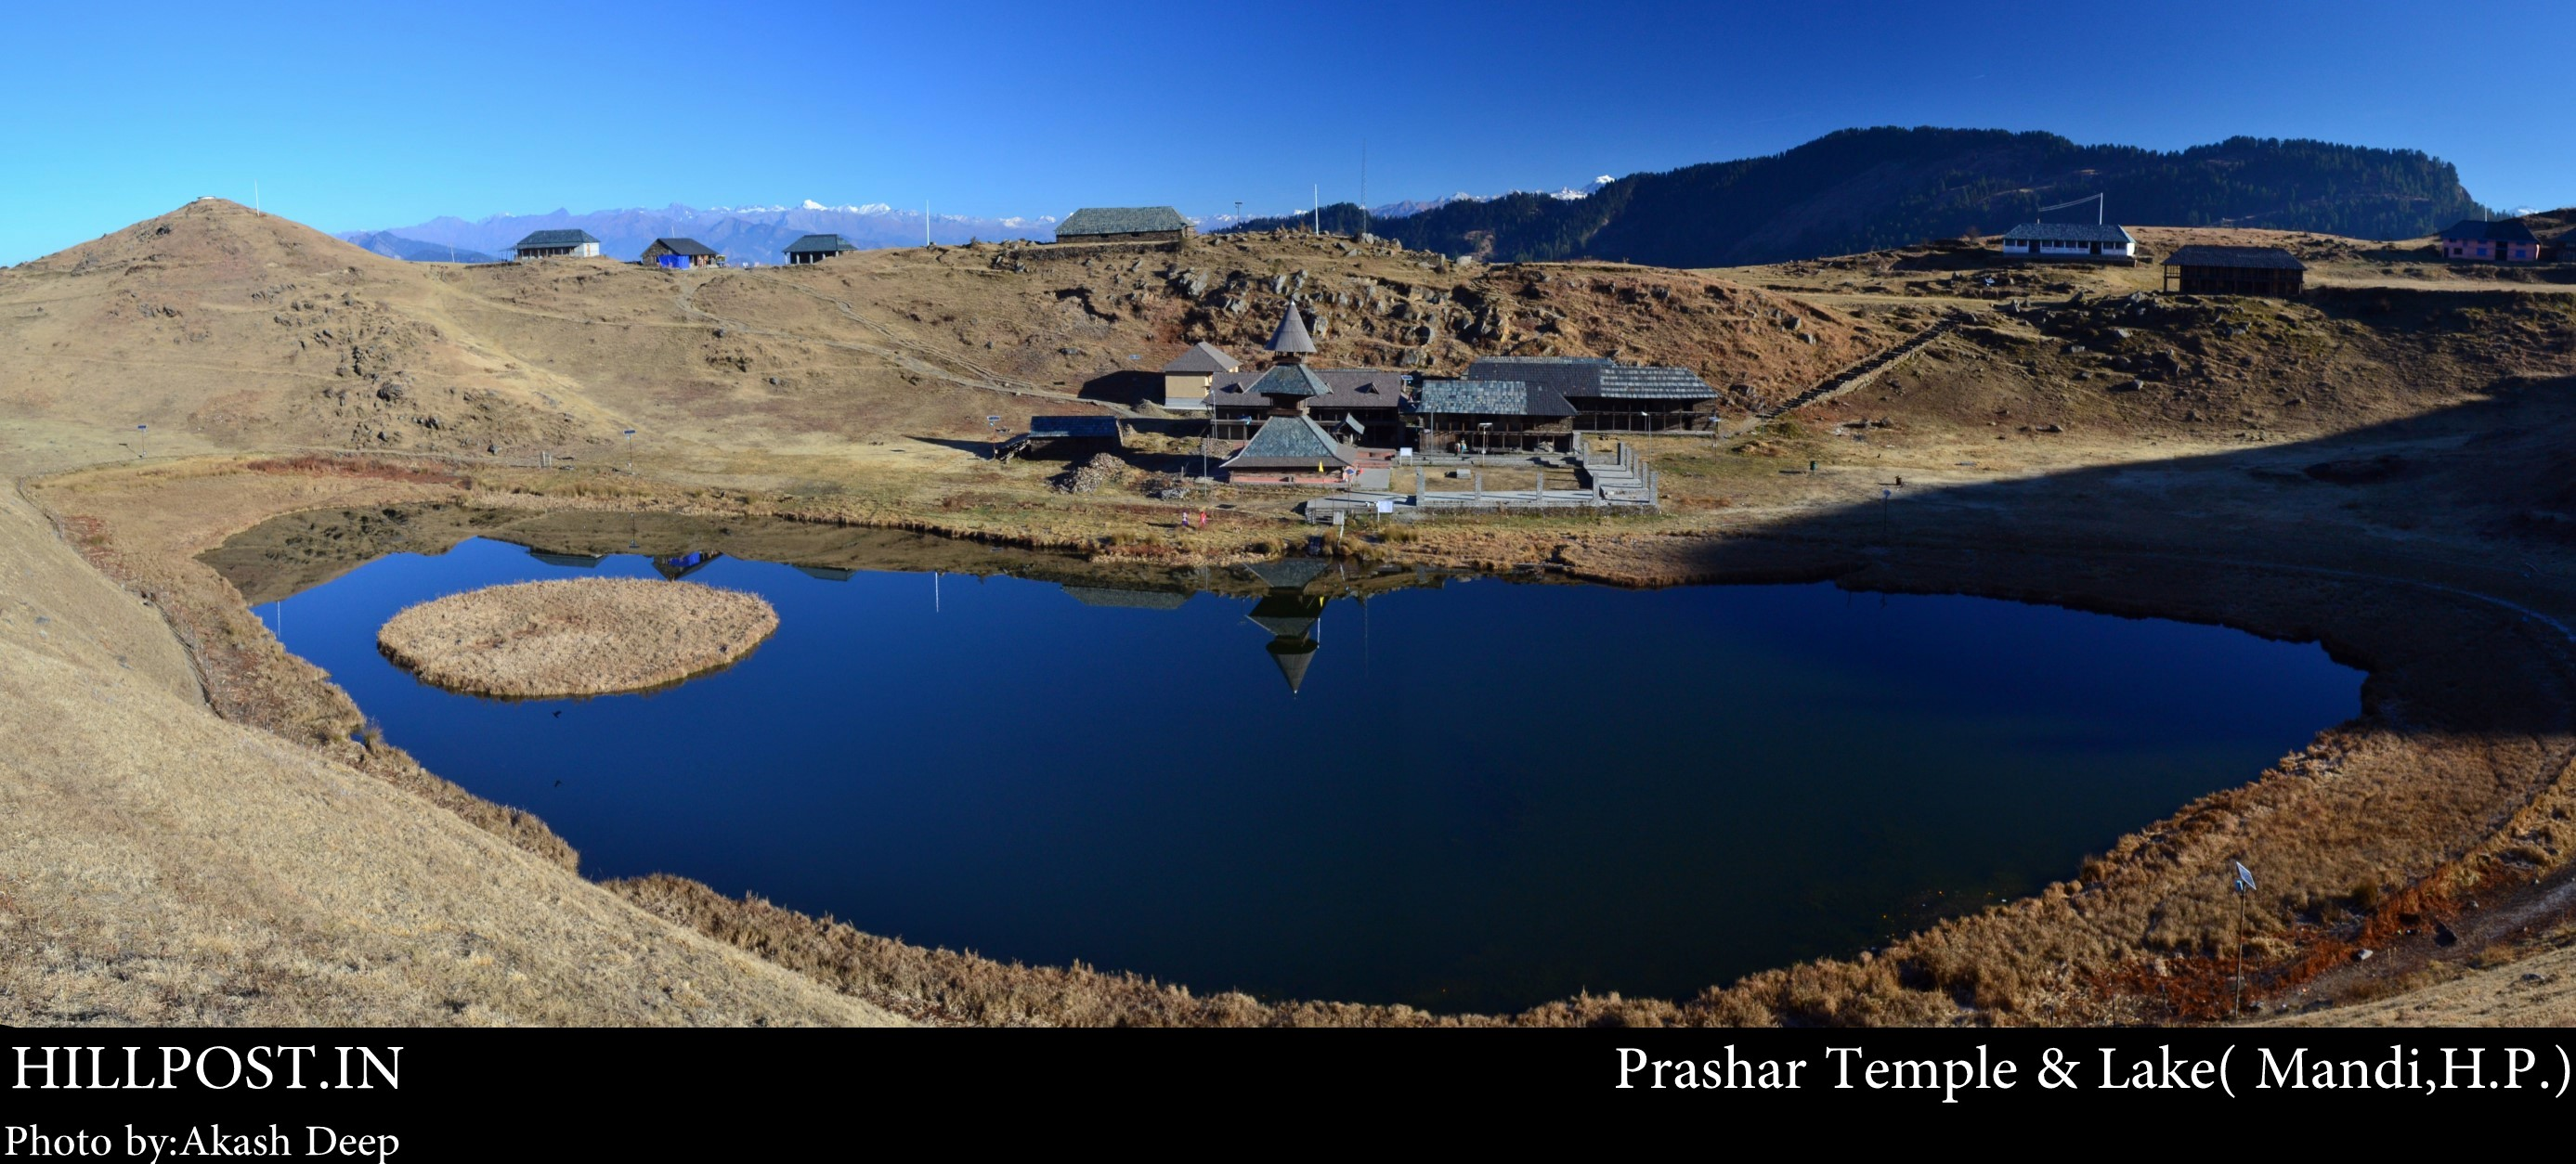 Prashar Temple & lake (Mandi, H.P.)